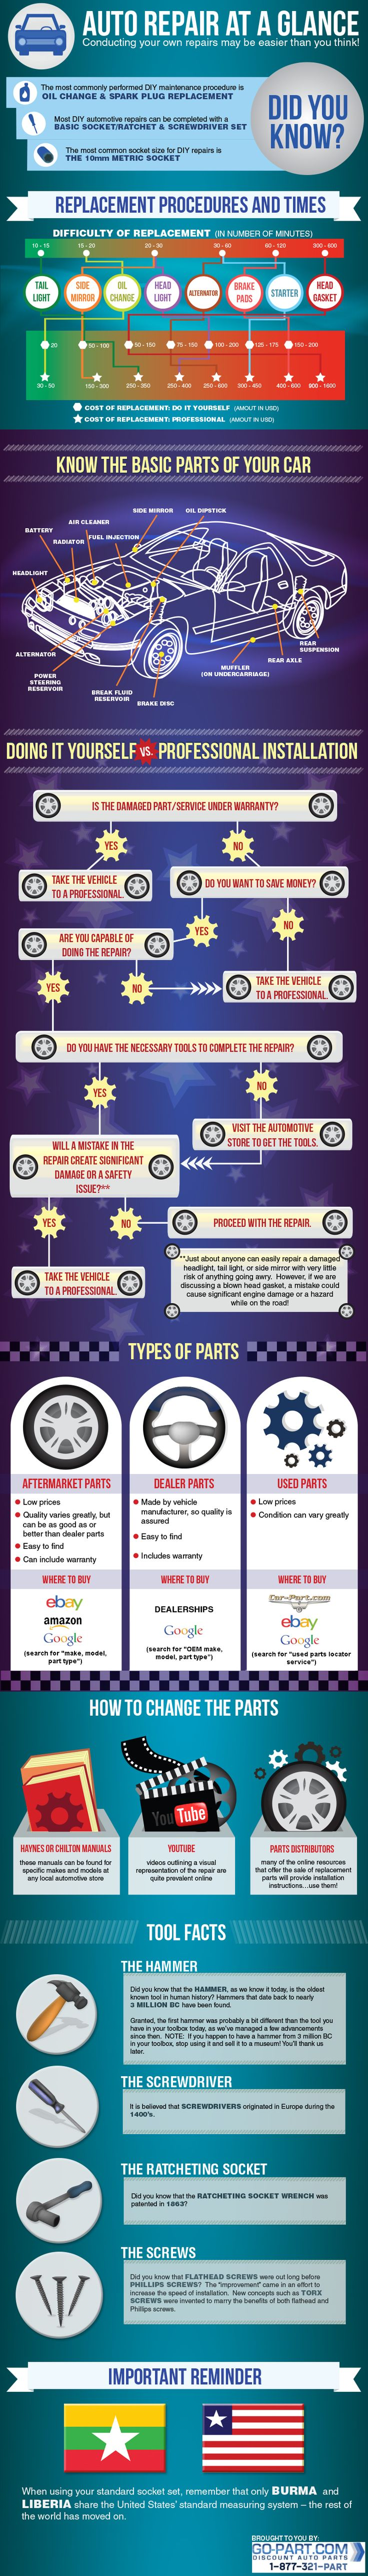 In the following infographic by the folks over at Go-Part.com, some basic repairs that can be conducted in one's driveway or garage are outlined, reminding us that there are several ways to save money when it comes to our vehicles. By noting the average replacement times, cost of parts, and the alternatives in using a professional, their goal is to create some confidence in consumers that there are some common repairs that can be facilitated quickly and effectively.